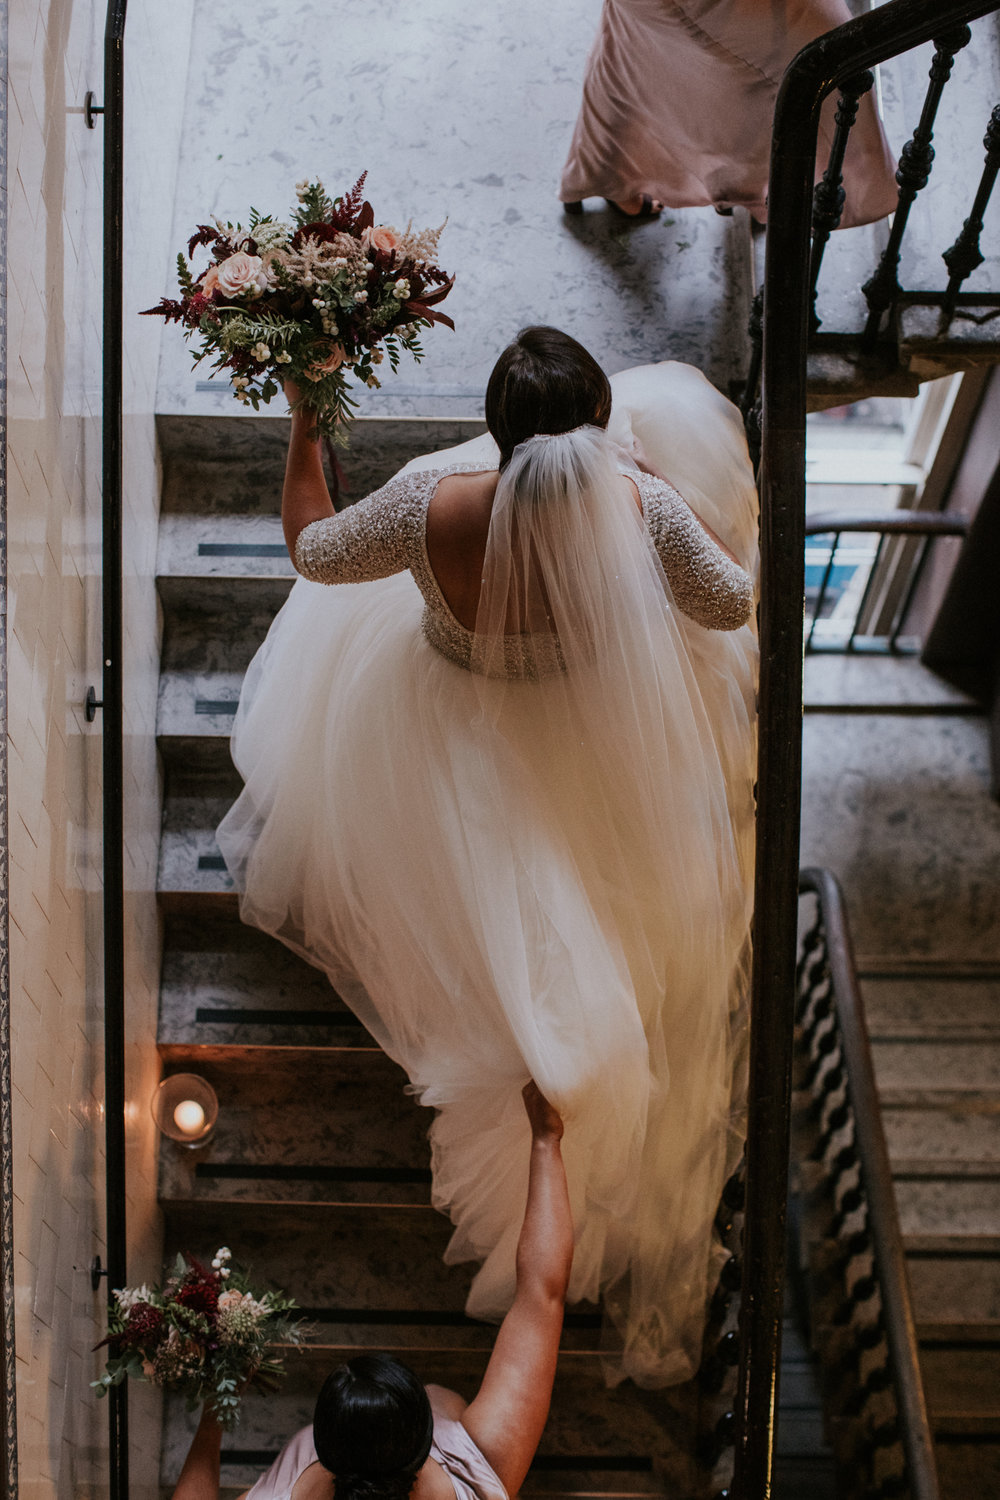 The bride with her bridesmaids are walking in the stairs to the ceremony room at the 29 Private members club in Glasgow